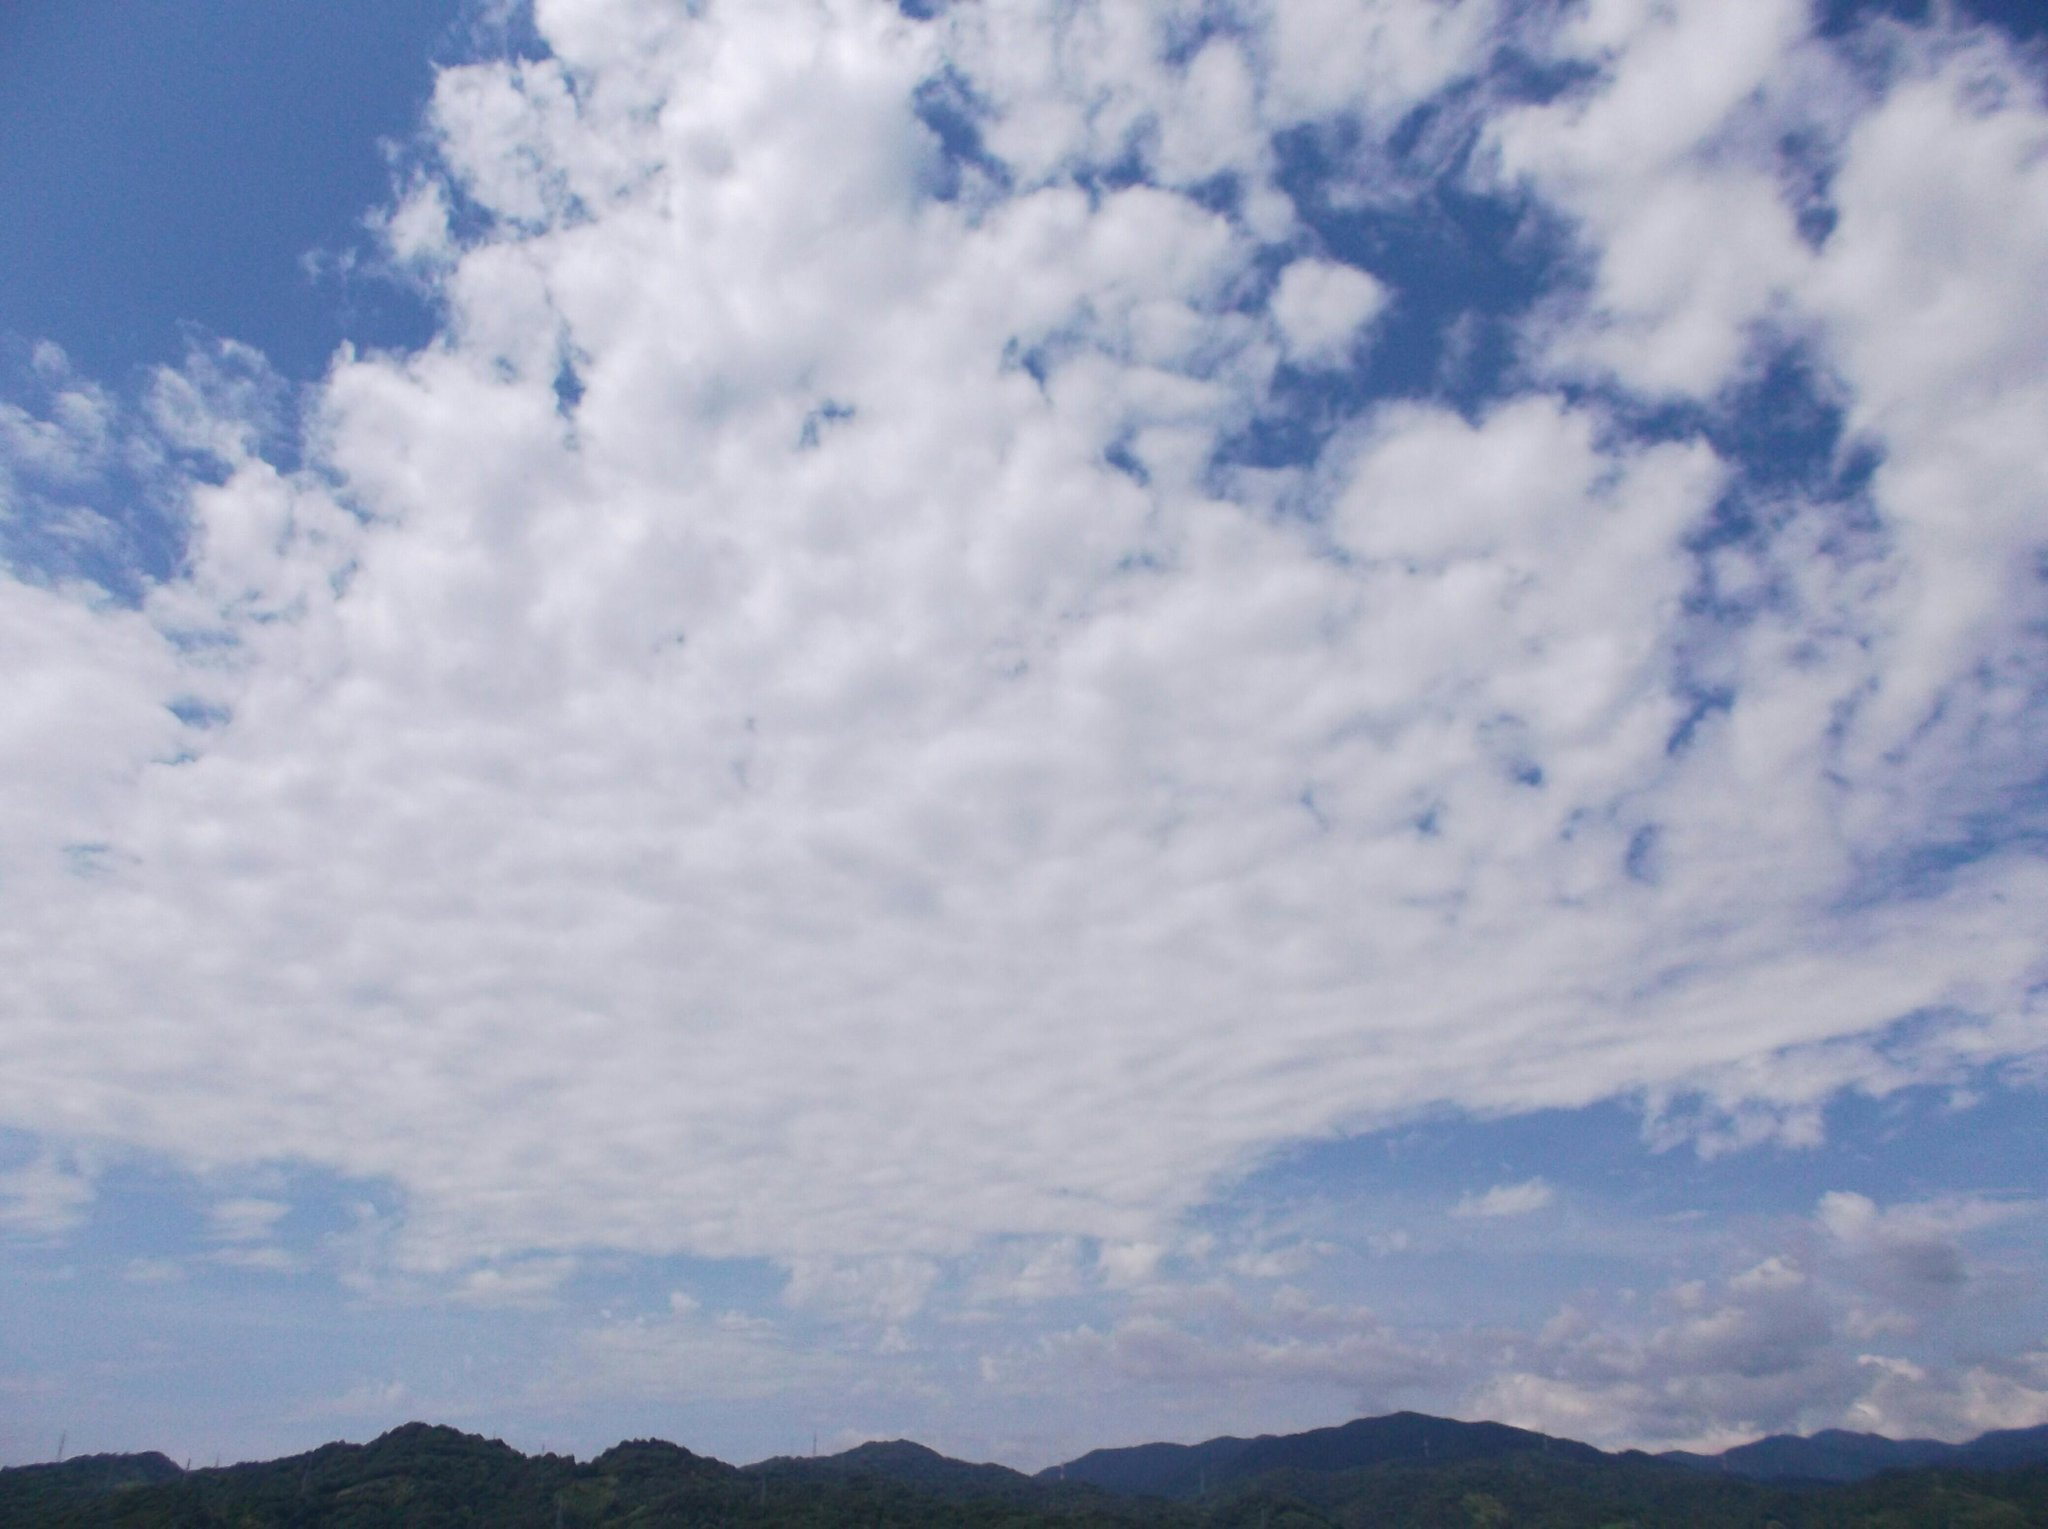 【空からの賜物, A Gift From The Sky】 #空  #雲  #Sky  #Clouds  Humanrights http://t.co/cYg7fuZMKA